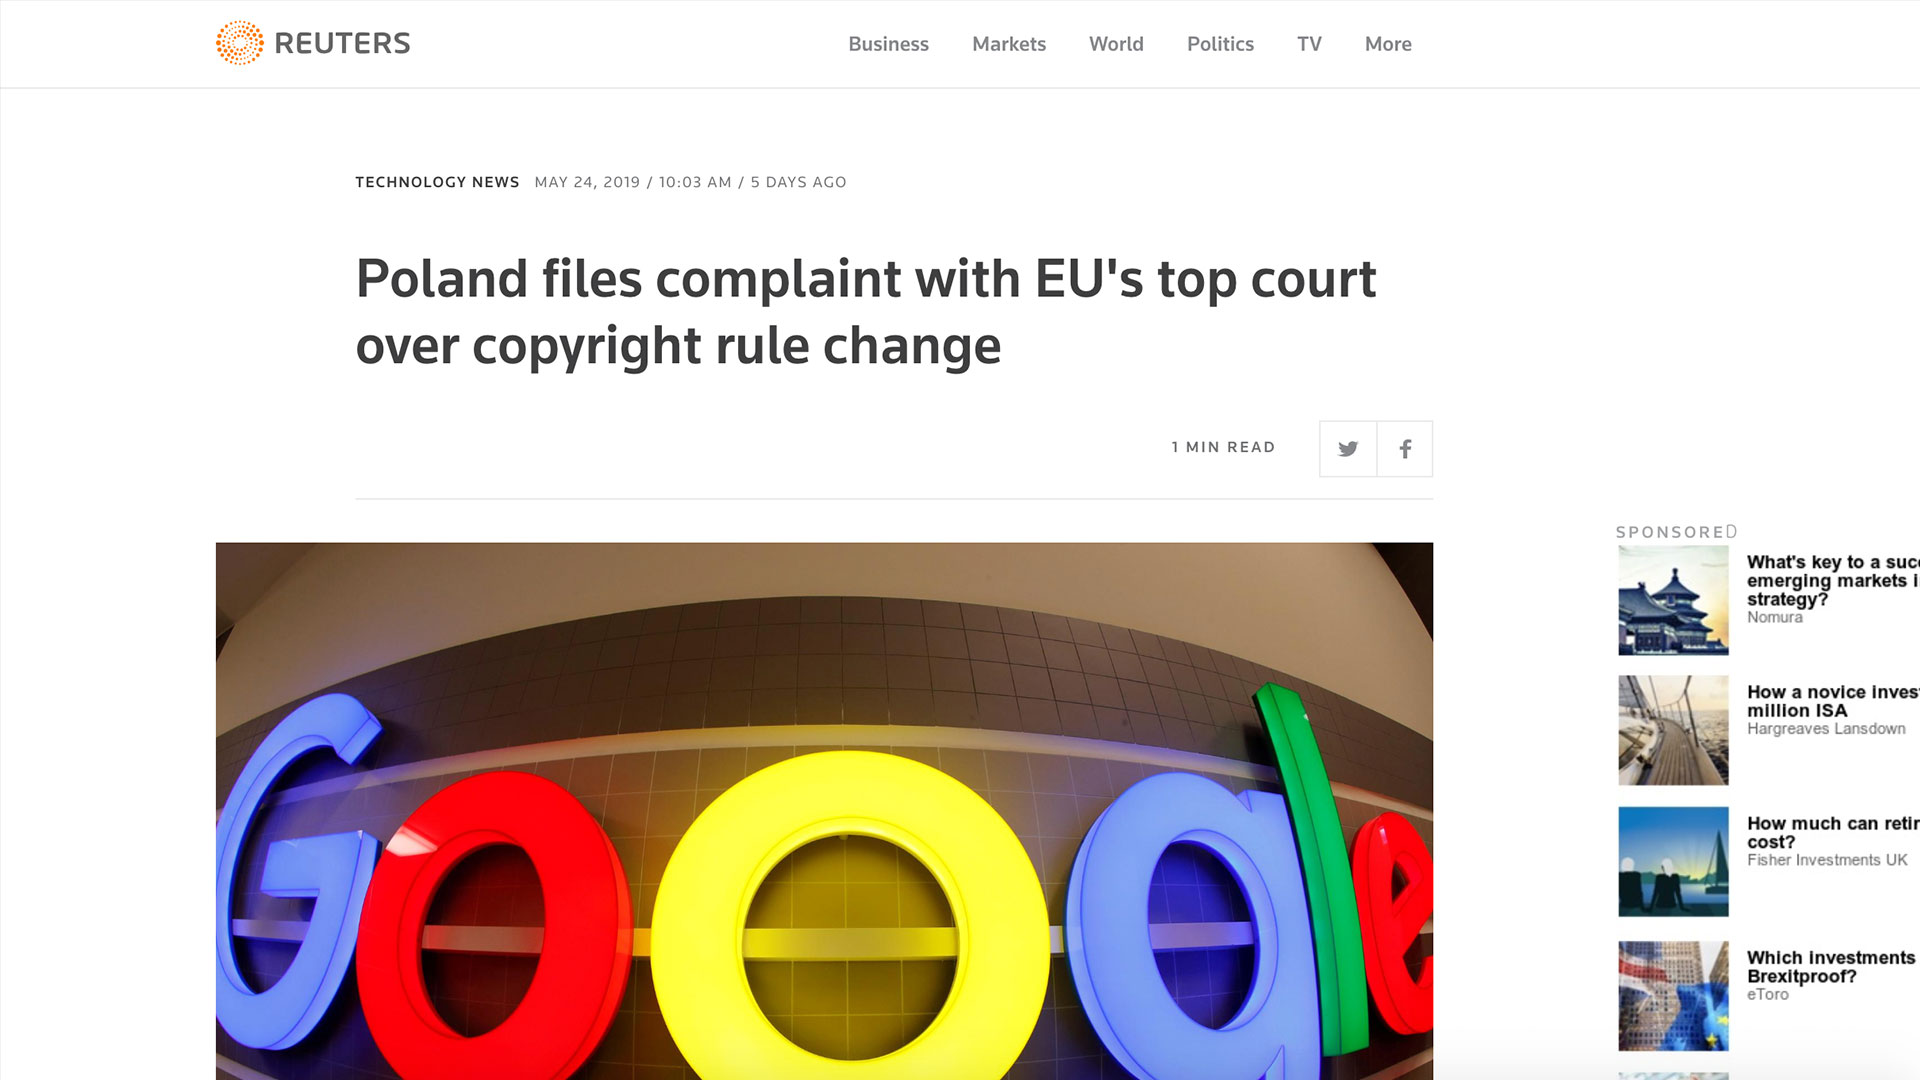 Fairness Rocks News Poland files complaint with EU's top court over copyright rule change